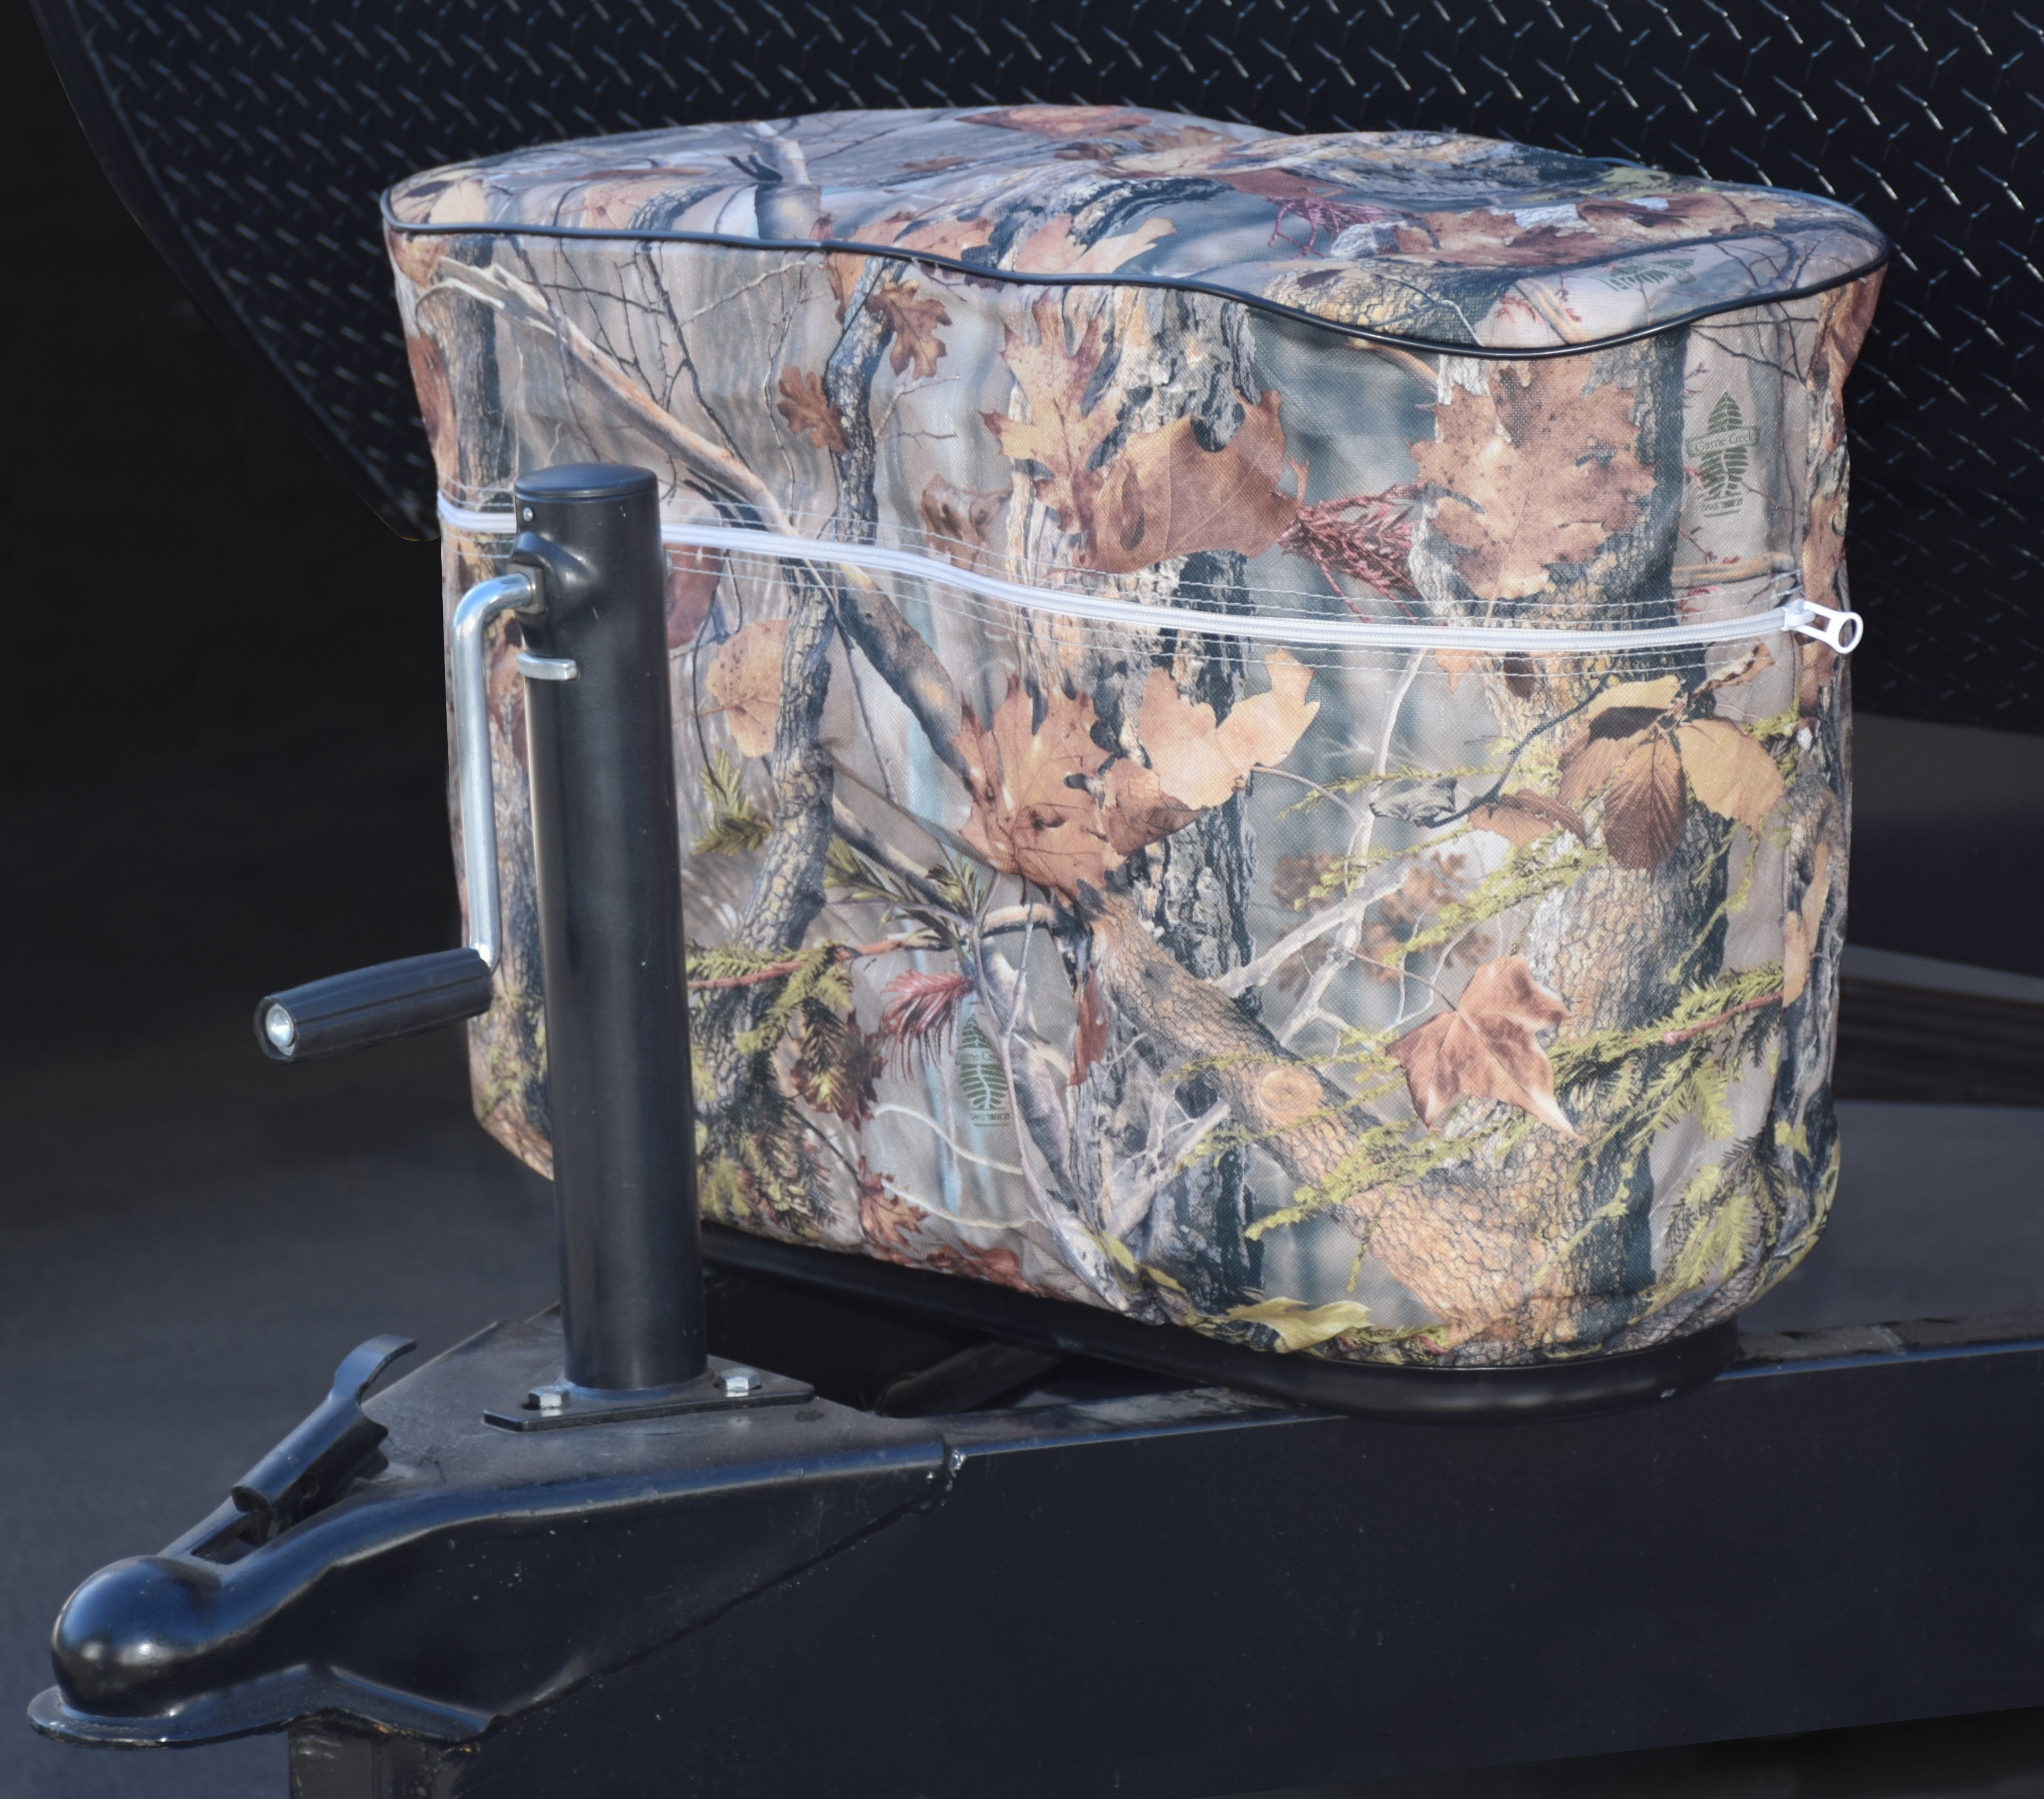 Product Image for Camouflage Propane Tank Cover for Single 20 lb./5 Gallon Tank